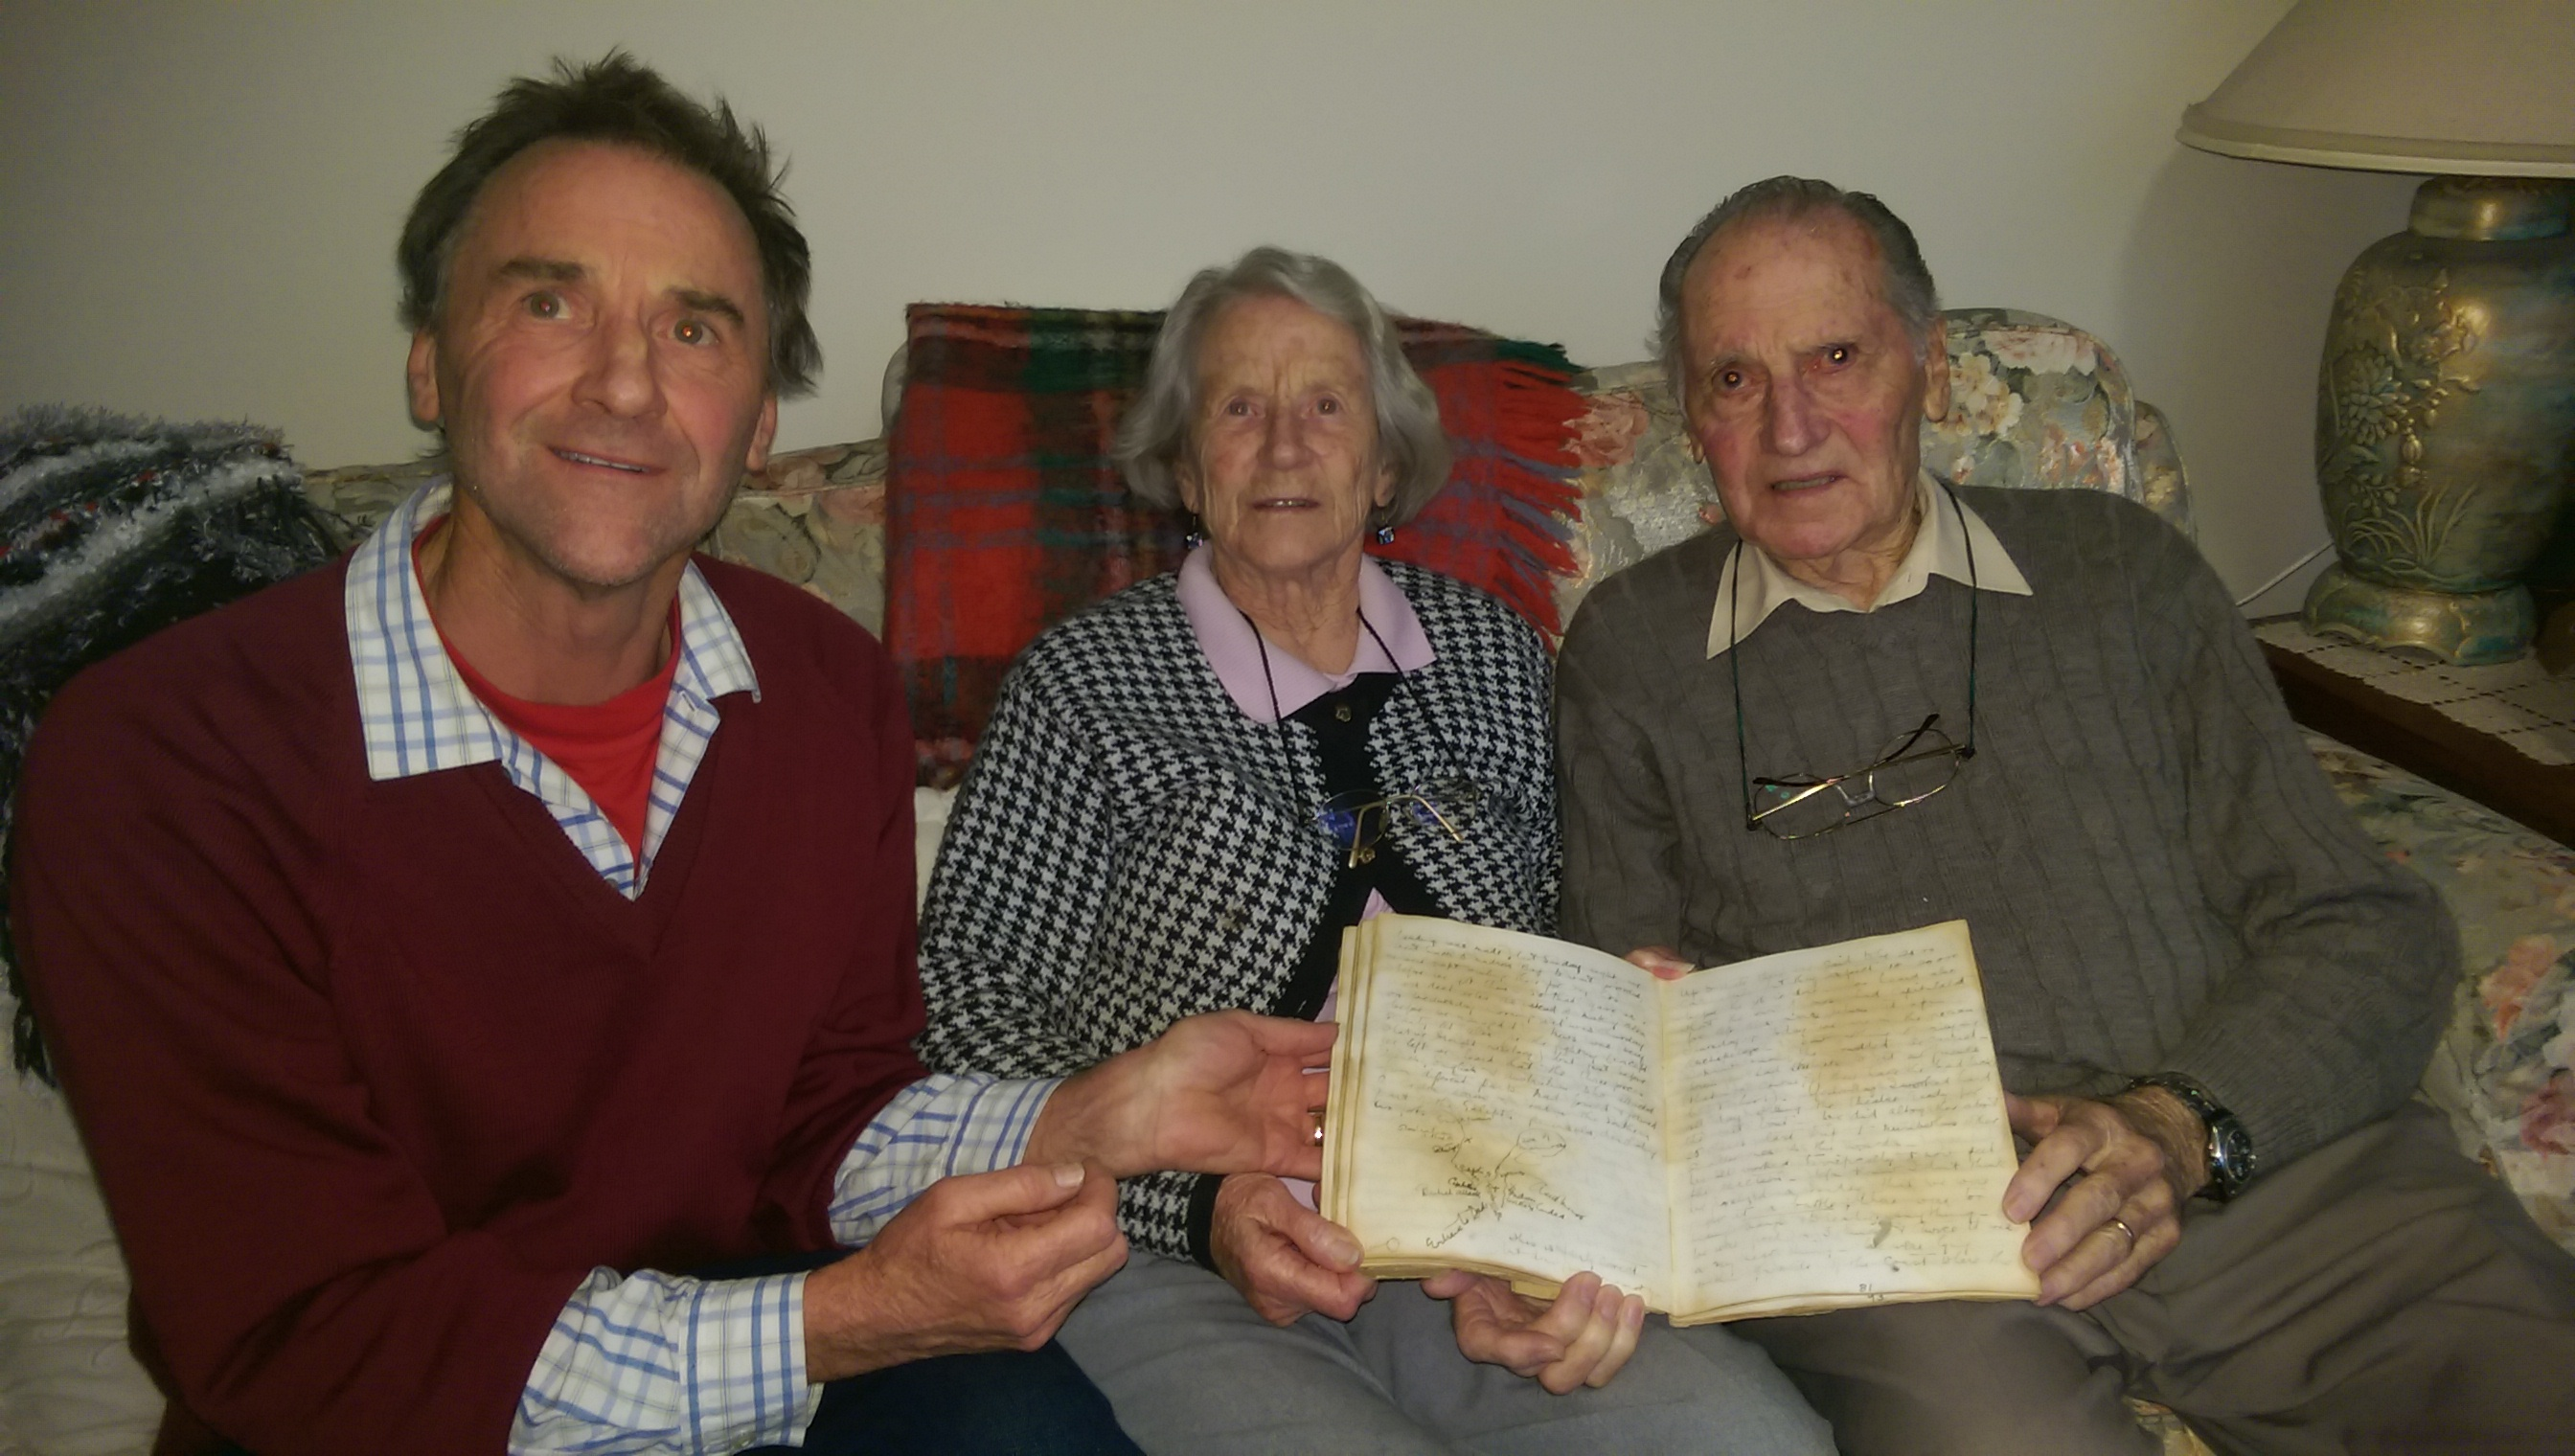 DONALD & MAVIS & MAX MARSHALL WITH CLEMENTINA MARSHALL ANZAC DAY 25TH APRIL 1915 DIARY